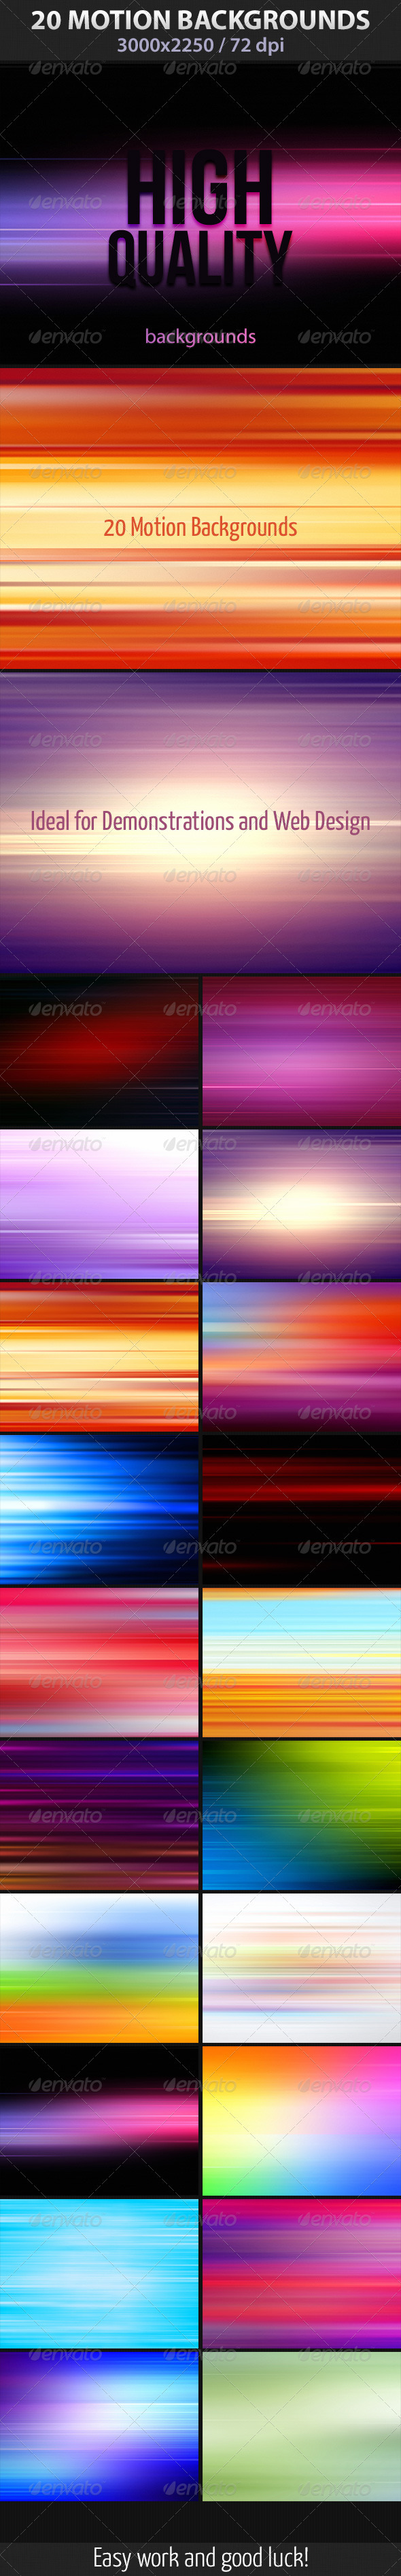 GraphicRiver - 20 Motion Backgrounds